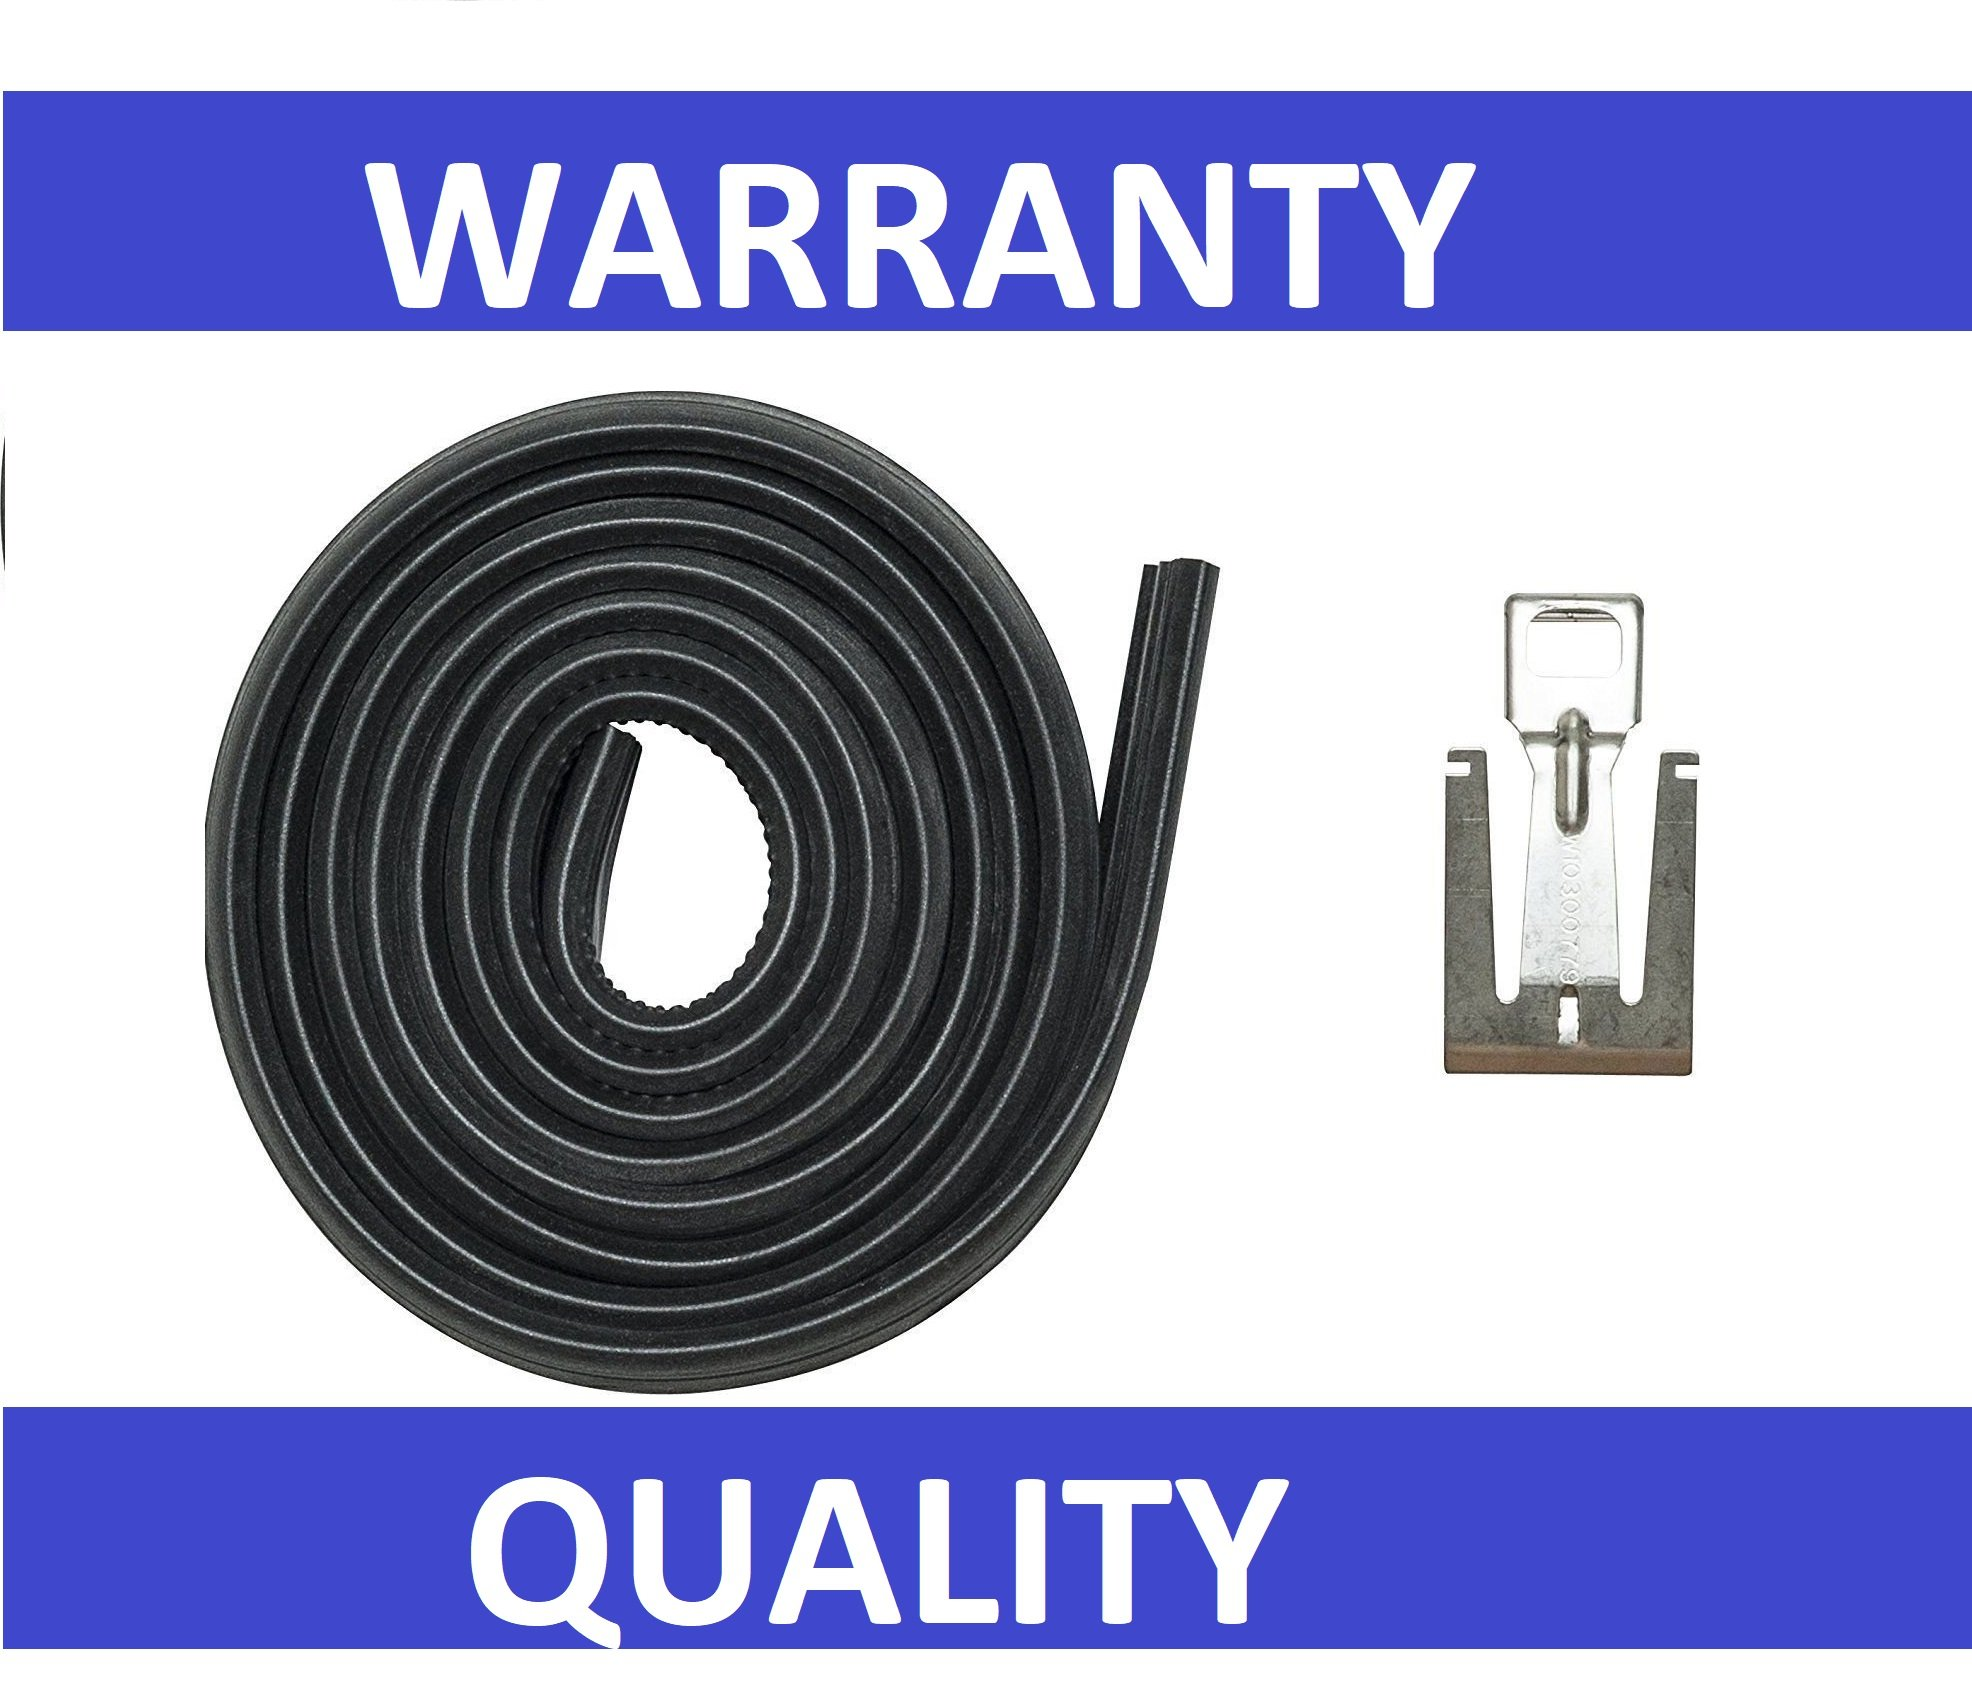 NEW W10542314 Replacement Dishwasher Door Gasket for Whirlpool AP5650274 PS5136129 W10284090 8268888-1 YEAR WARRANTY